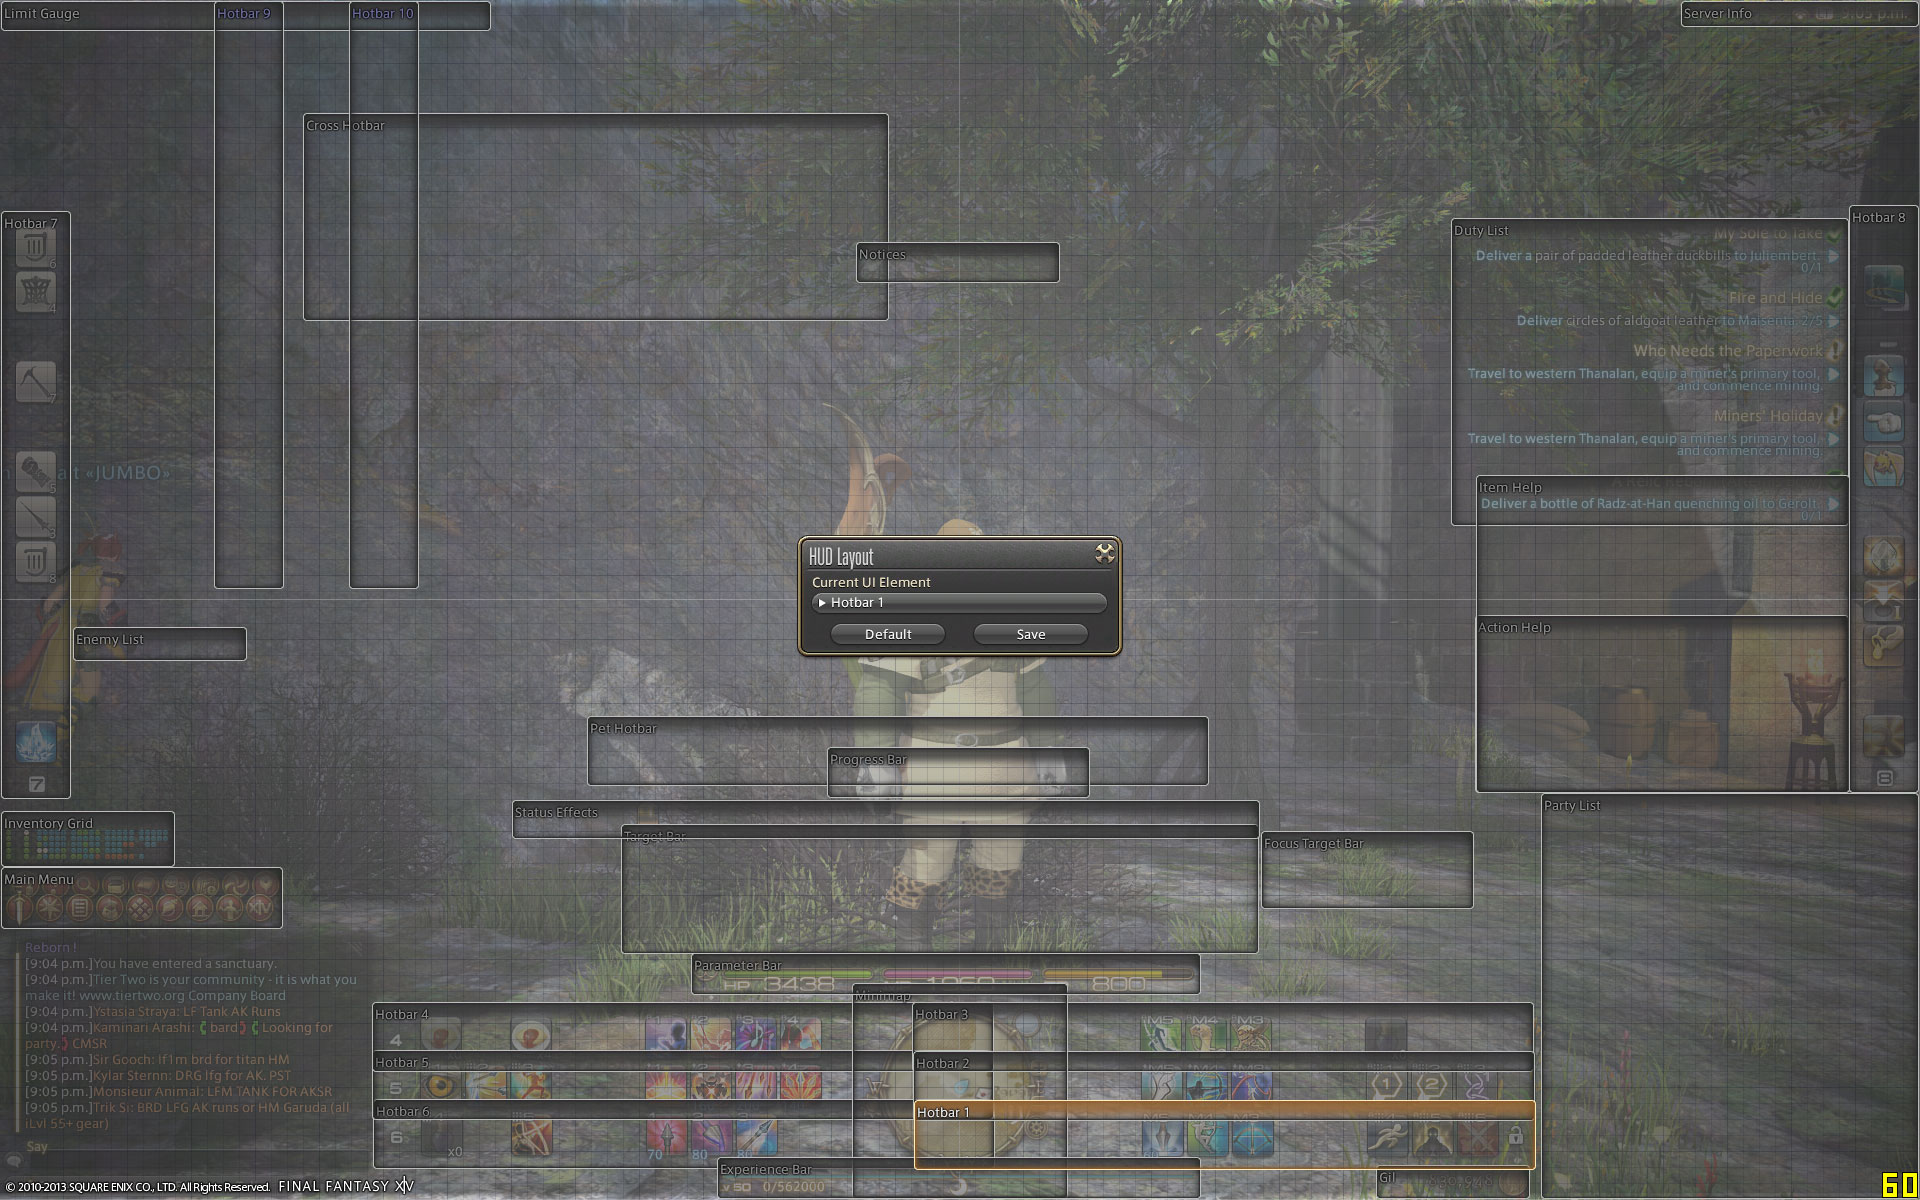 And by popular demand, here's the HUD layout.